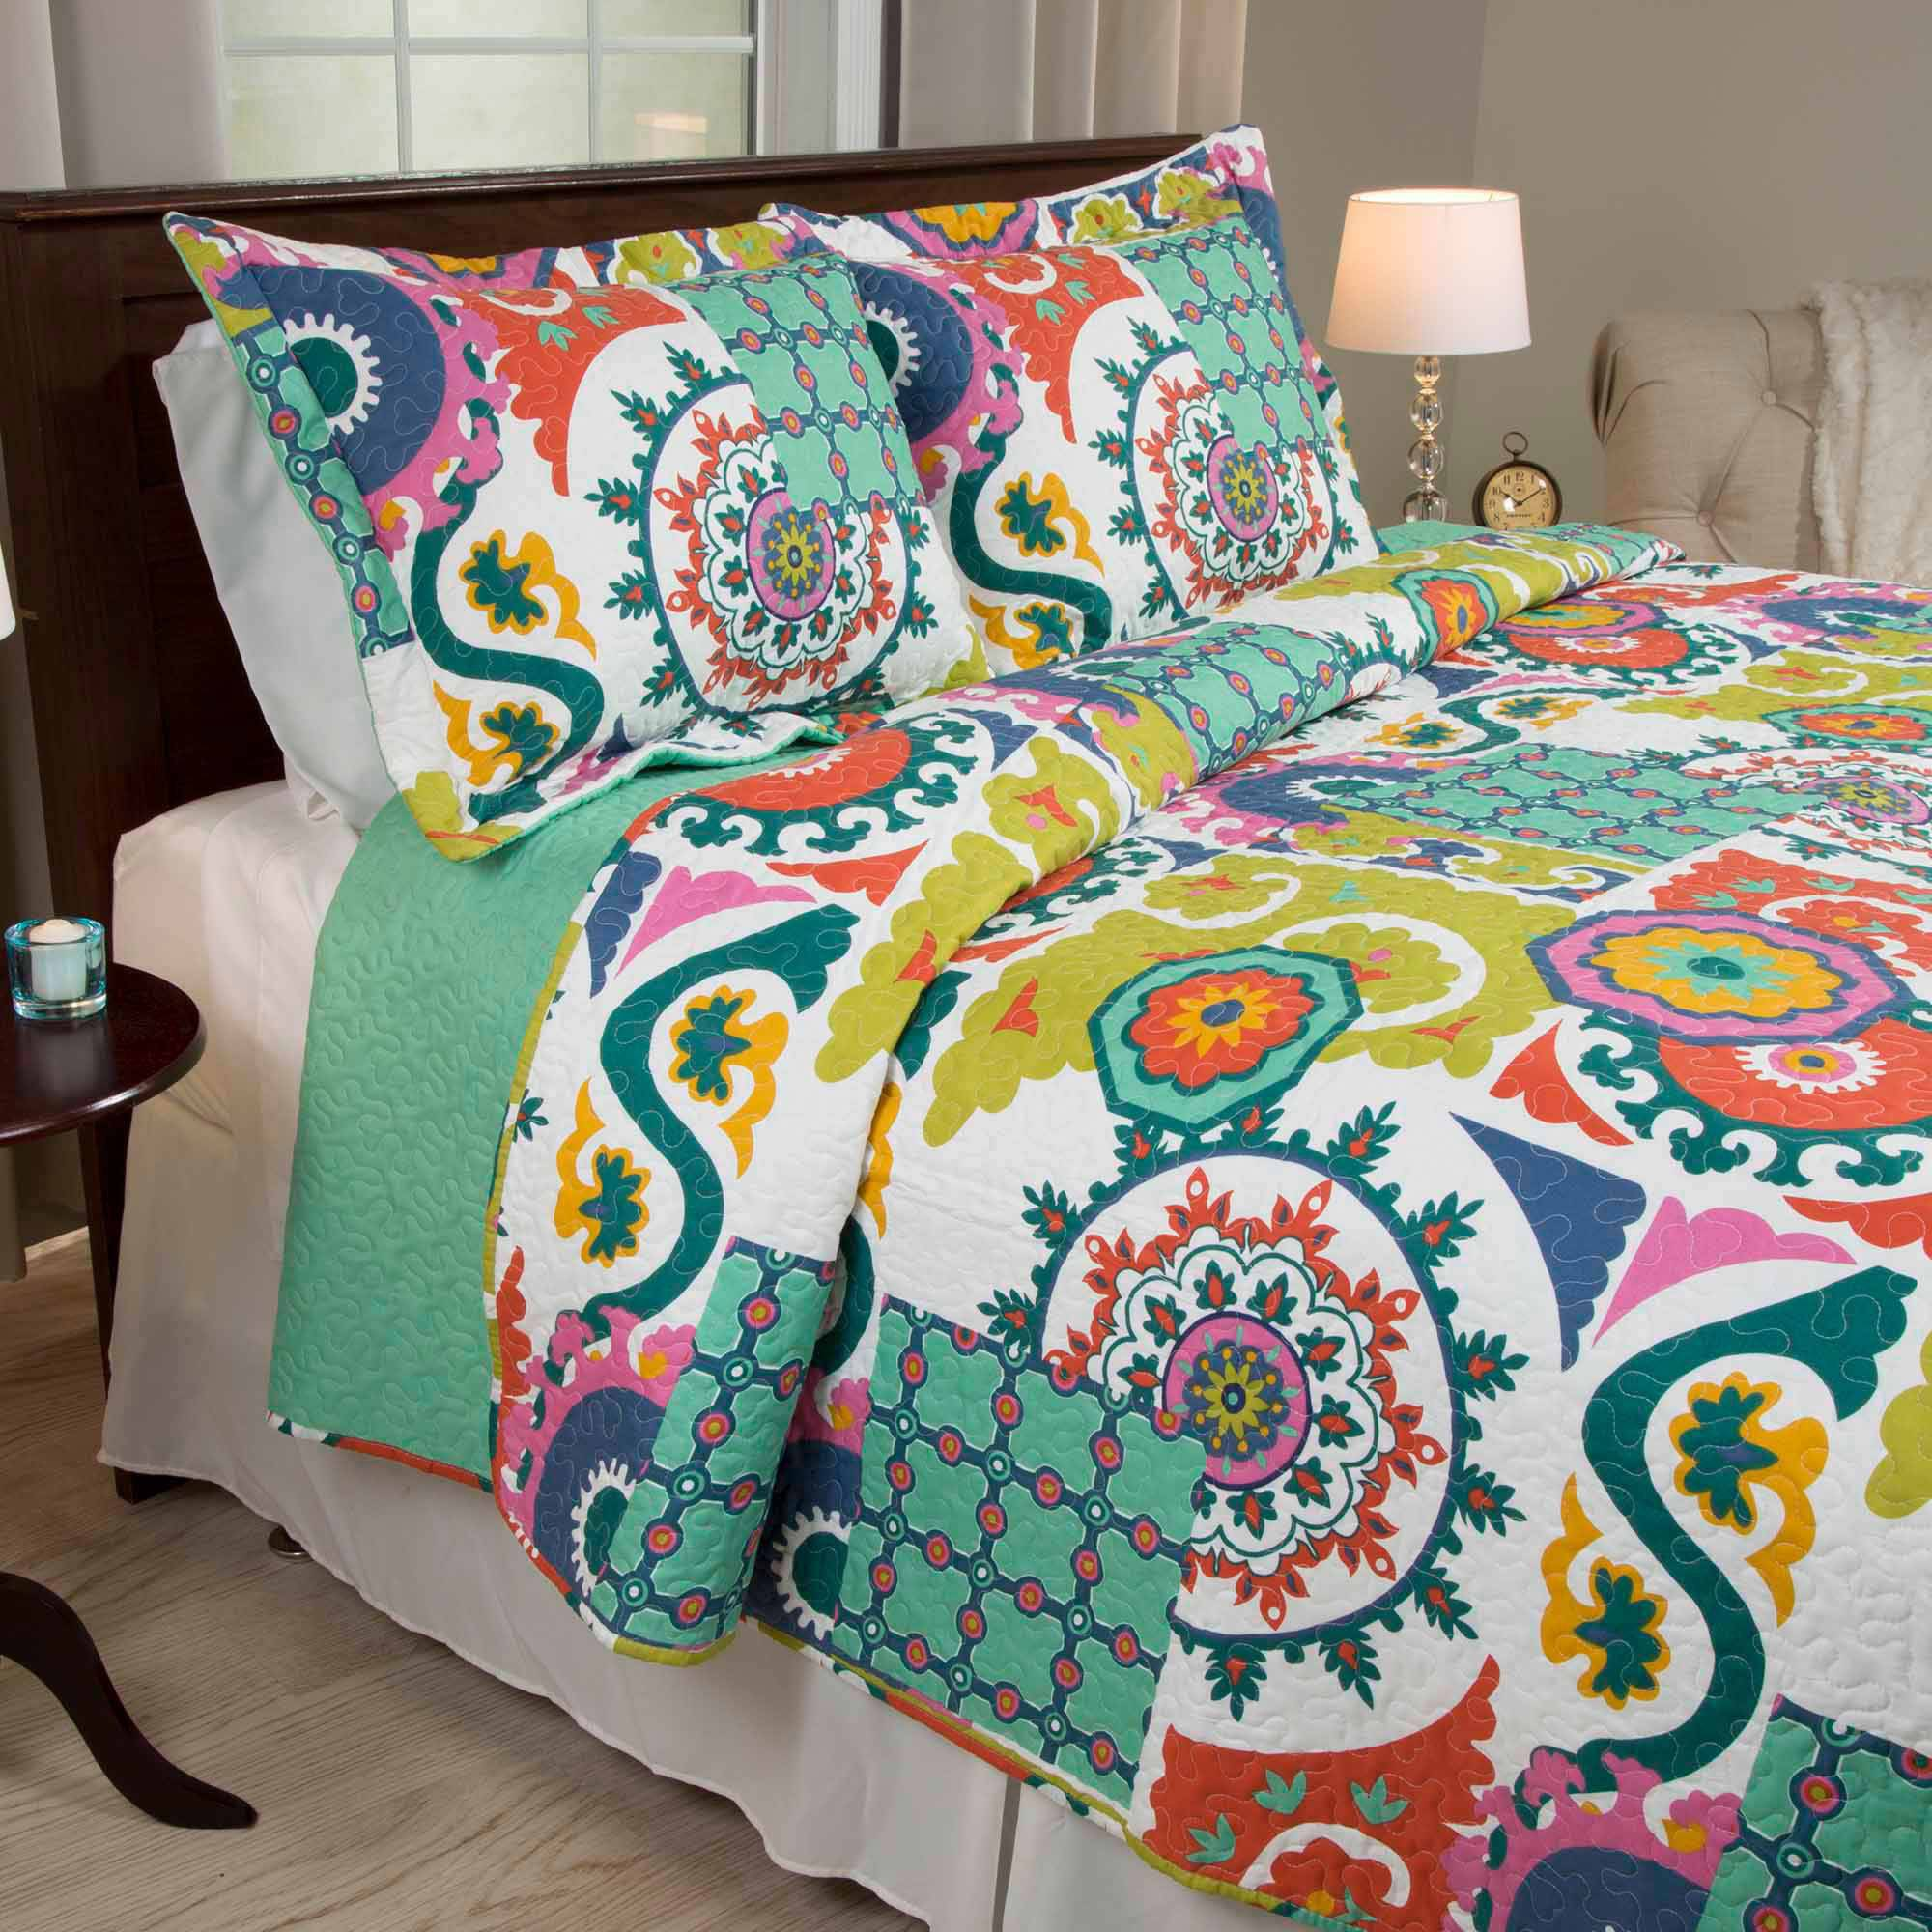 Somerset Home Sybil Quilt Set by Trademark Global LLC